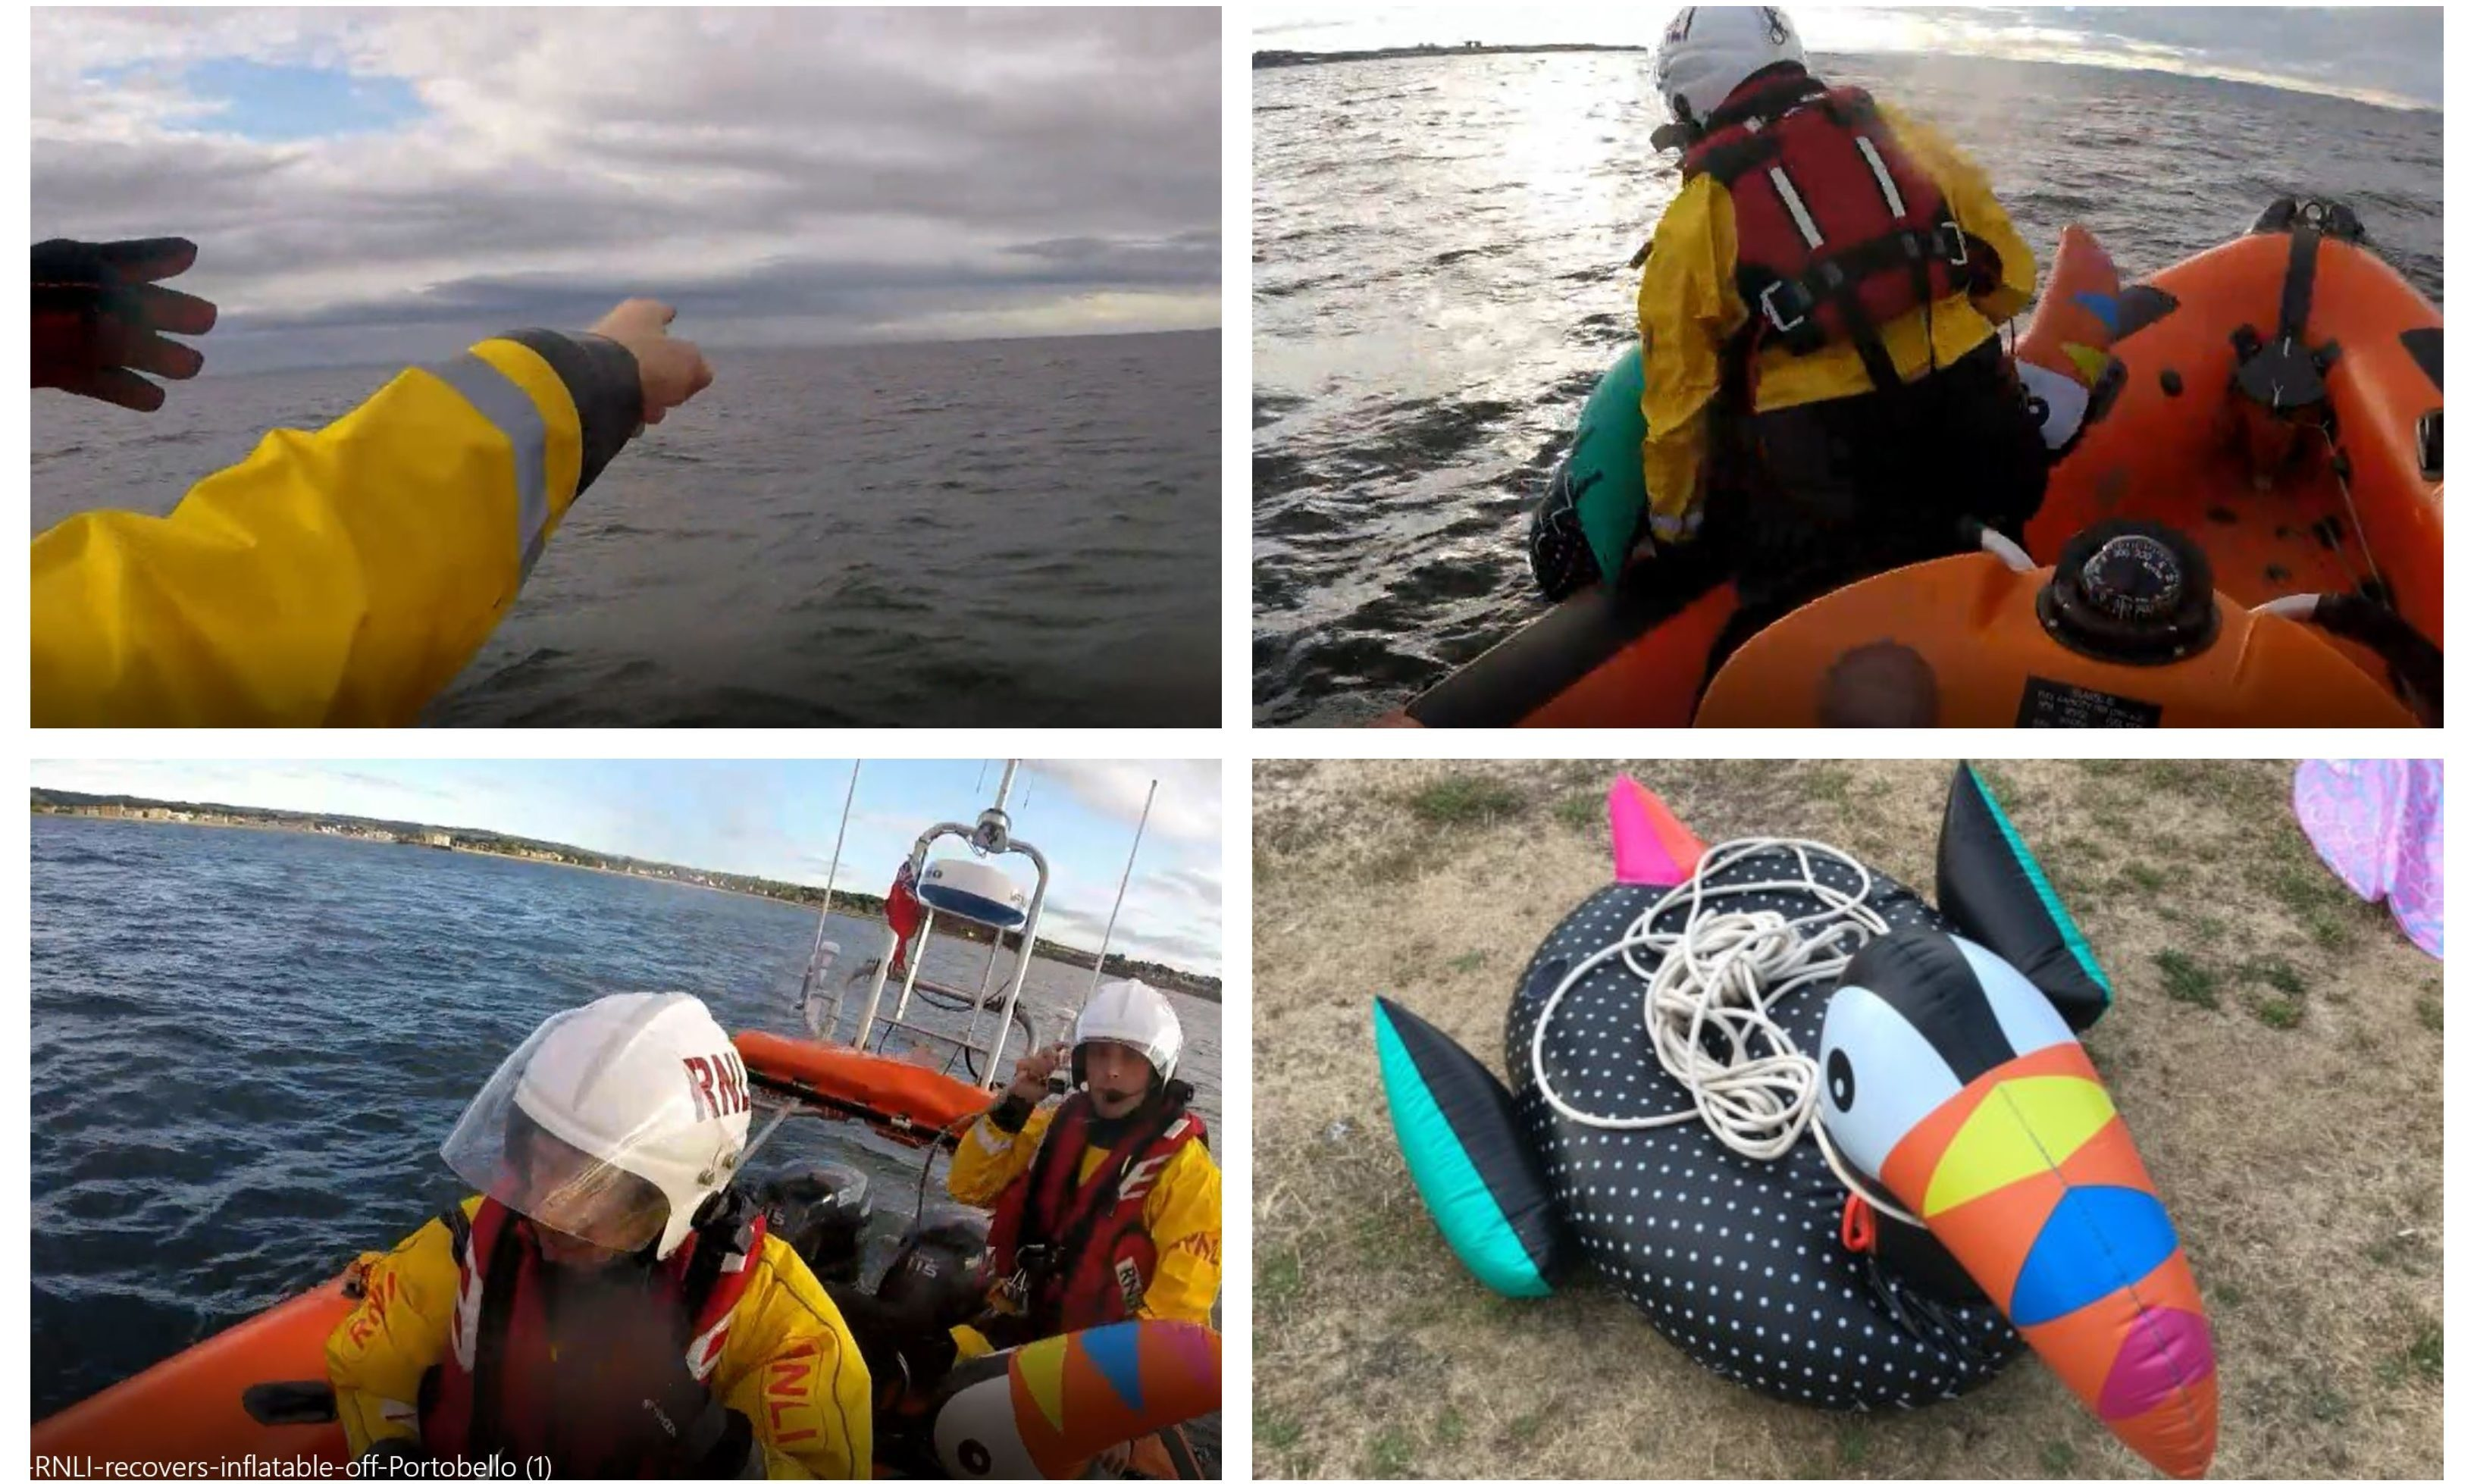 A video from the RNLI 'rescue' has been shared.